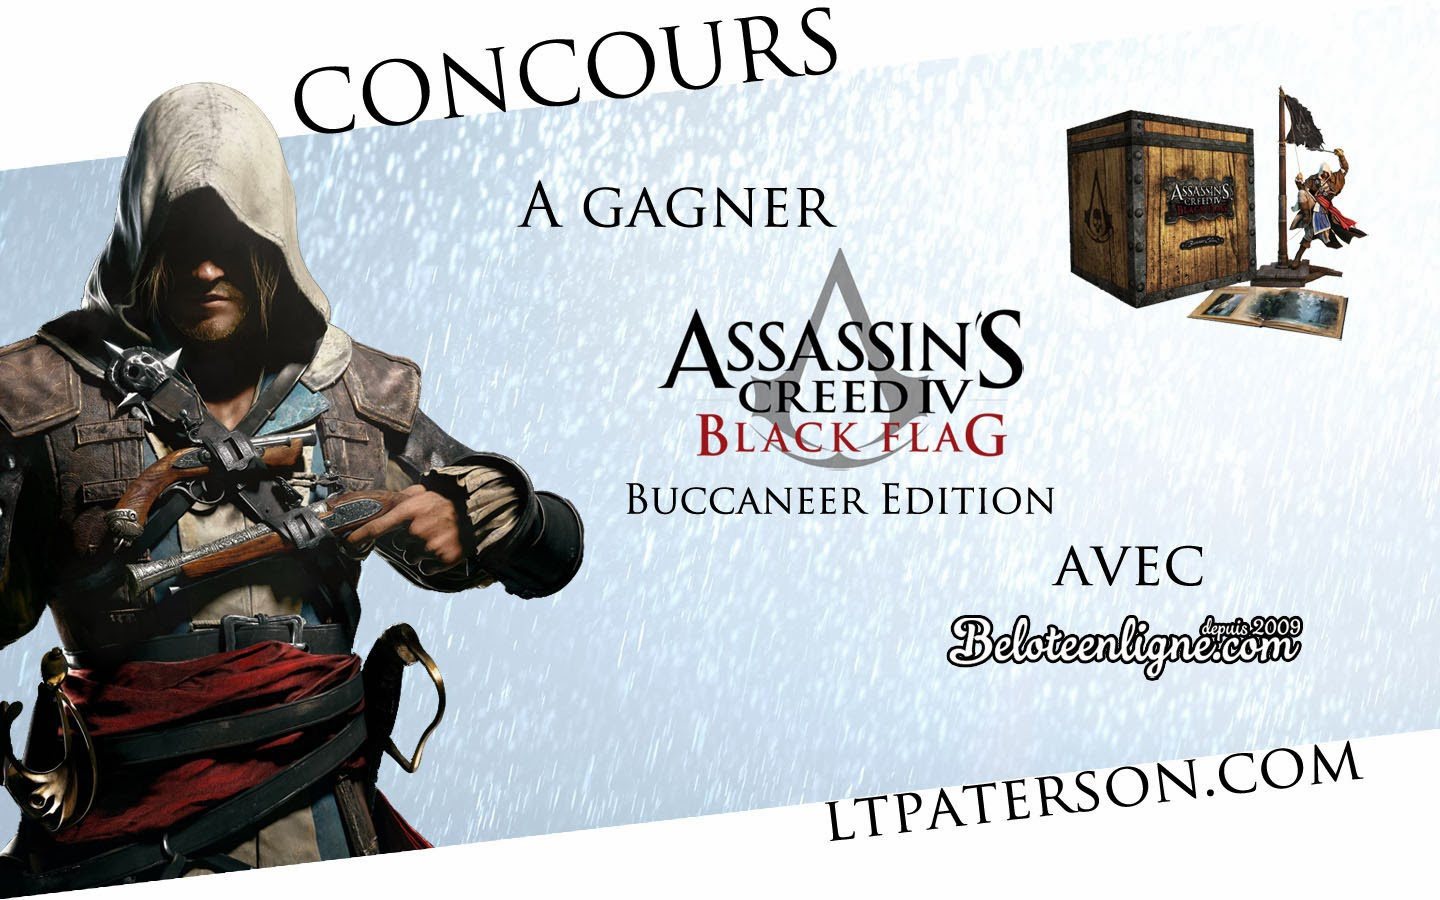 concours une dition buccaneer assassin 39 s creed 4 gagner blog jeux video pc. Black Bedroom Furniture Sets. Home Design Ideas